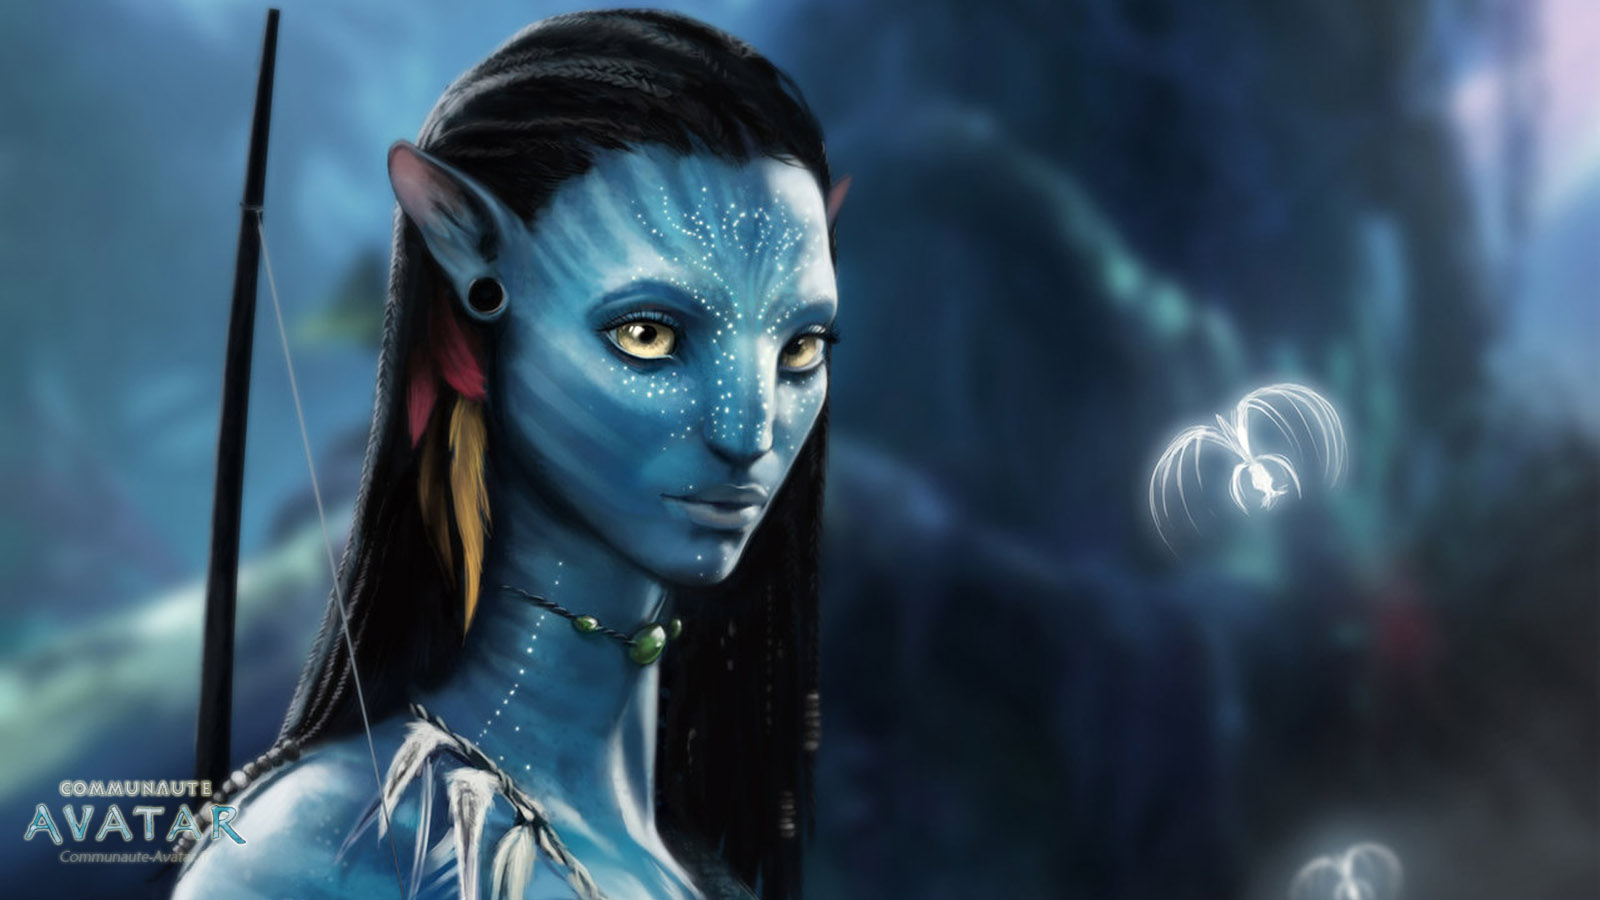 Avatar Movie Hd Posted By Michelle Cunningham